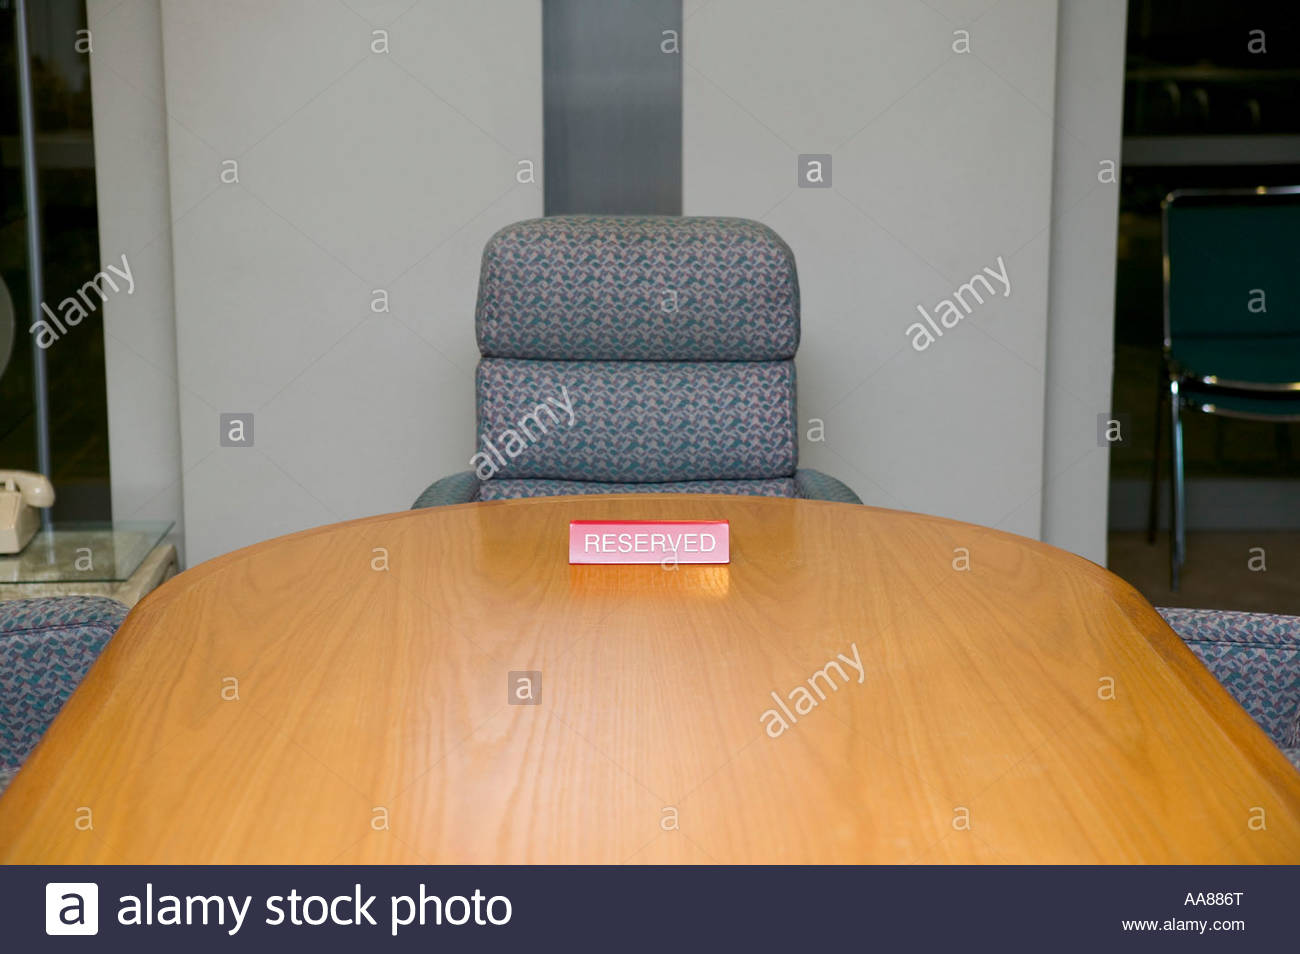 Conference table with reserved sign - Stock Image